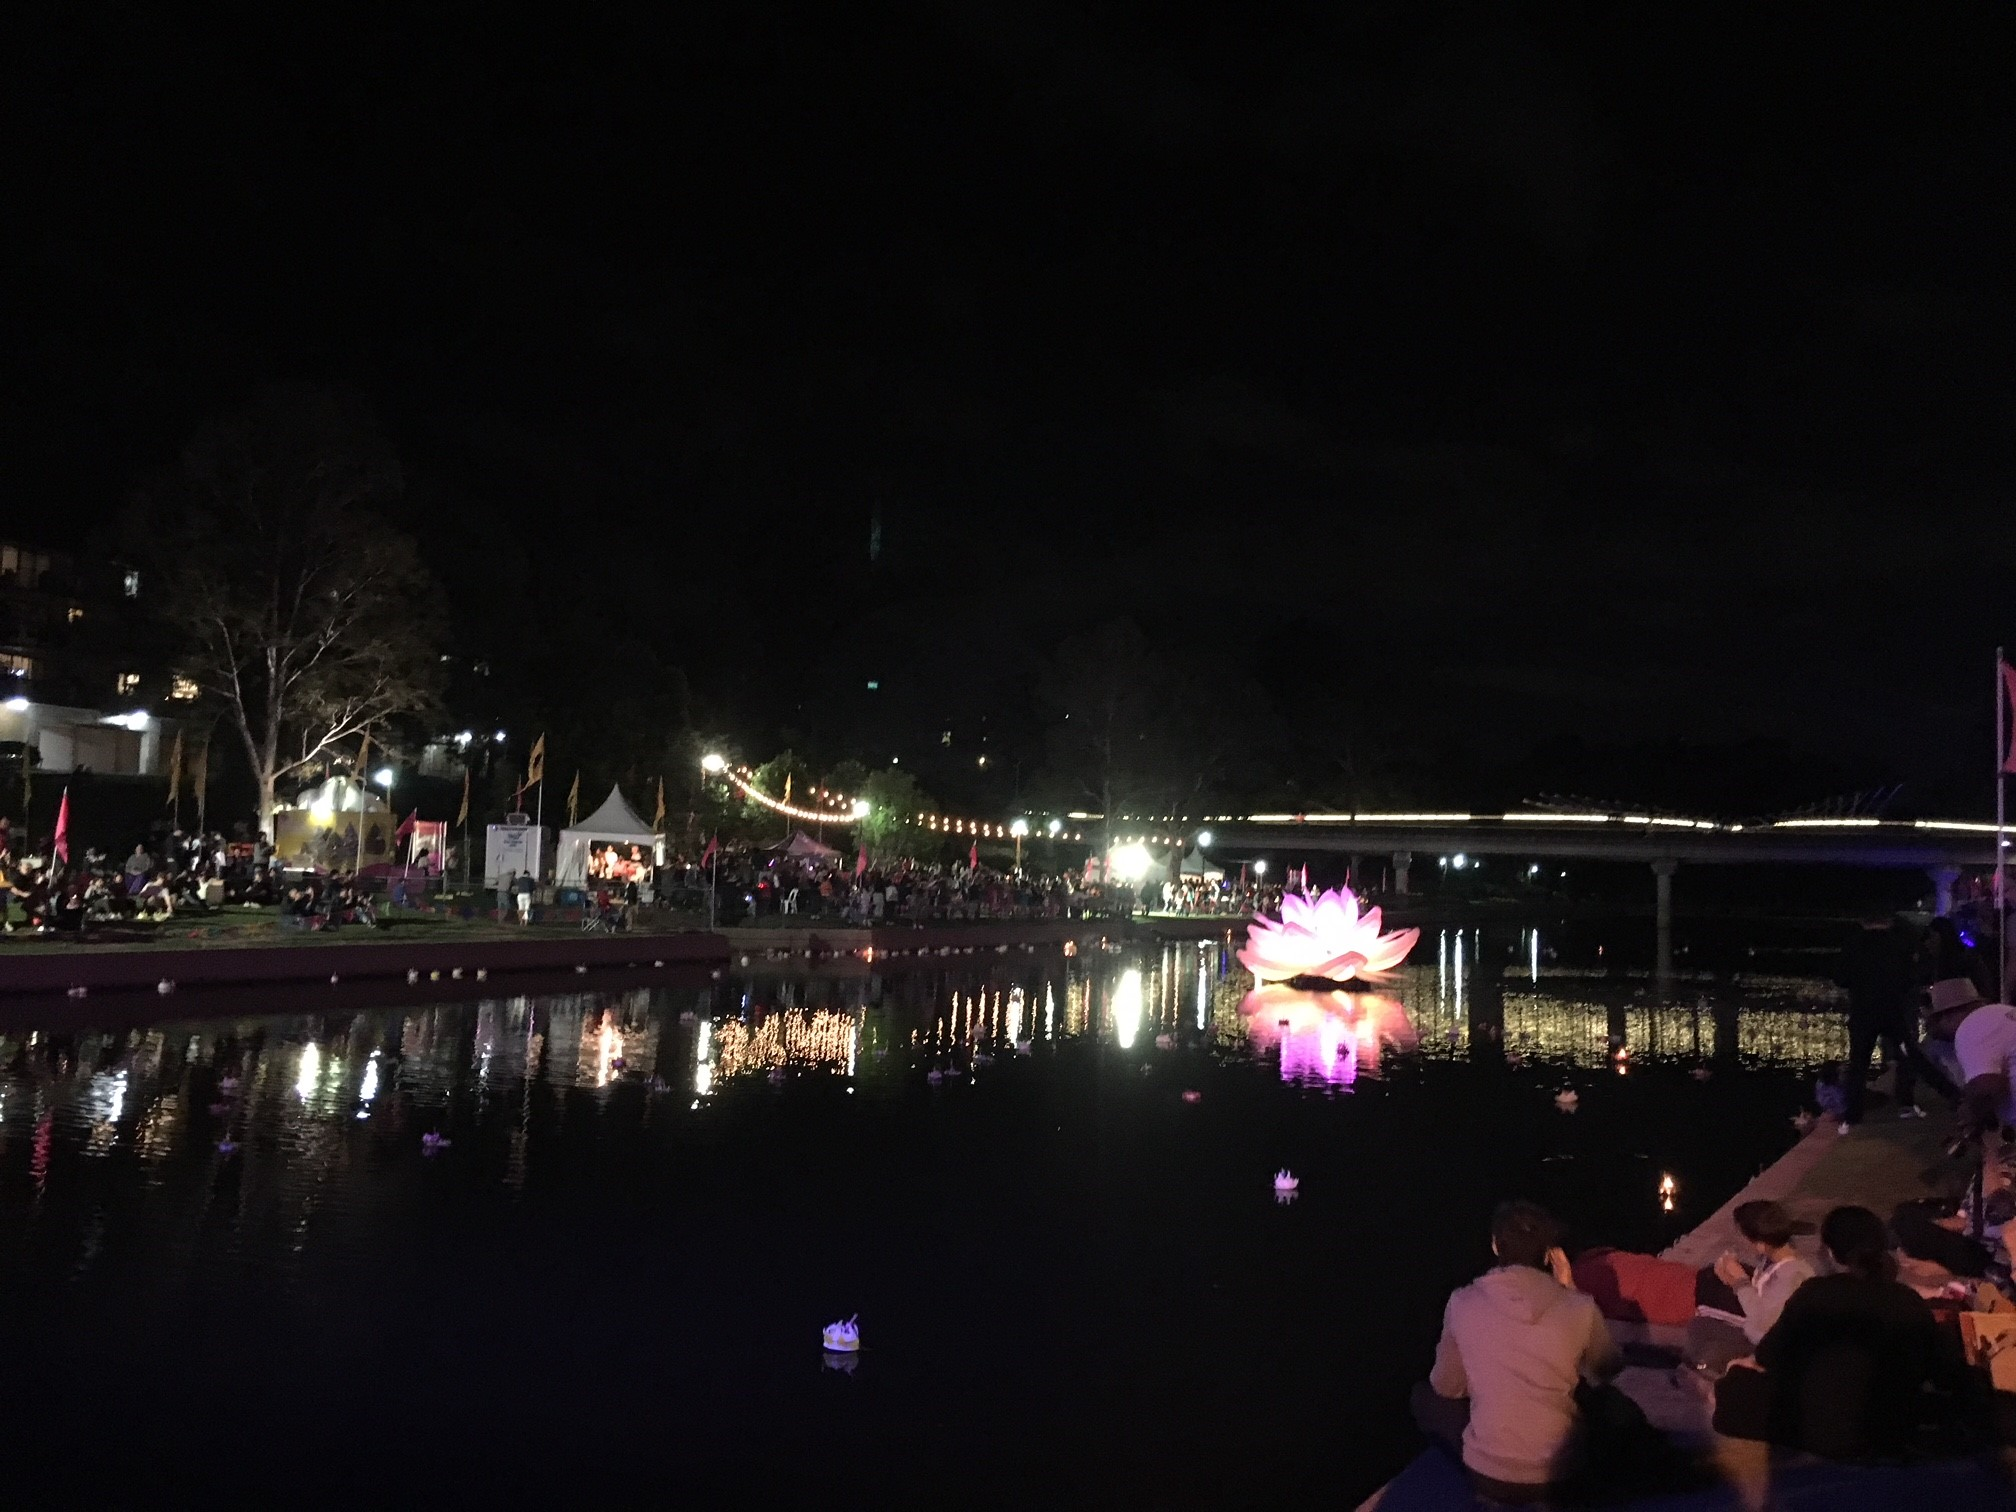 Parramatta river was lit up by a giant lotus flower lantern and lined up by the crowds on the riverbank last Saturday evening.